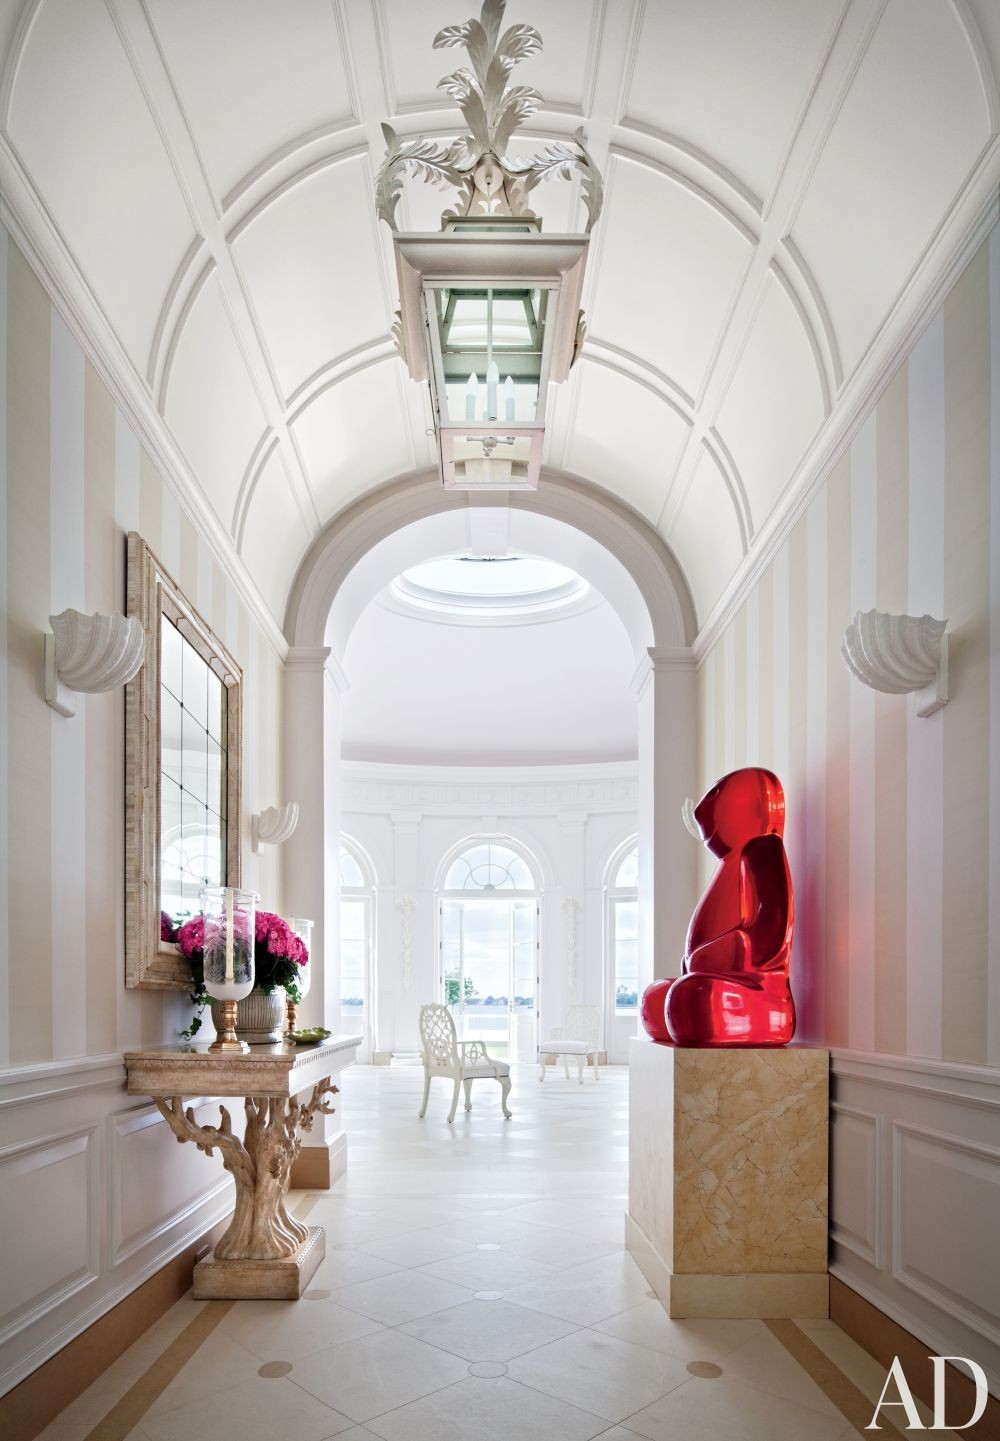 Traditional Staircase/Hallway by Mario Buatta and Thomas M. Kirchhoff in Palm Beach, Florida